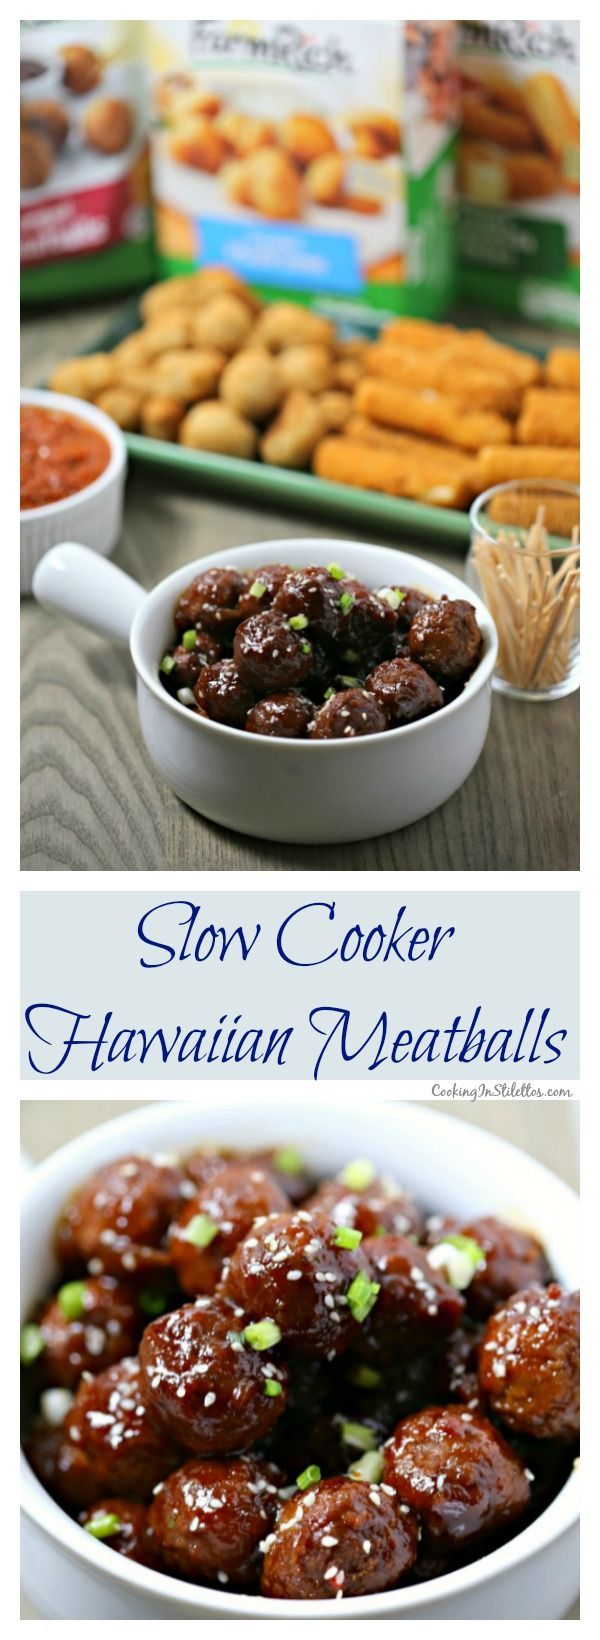 Slow Cooker Hawaiian Meatballs from CookingInStilettos.com are spicy, sweet and packed with flavor. With just a few pantry ingredients and @farmrichsnacks Meatballs straight from the freezer and you can make these scrumptious meatballs in a flash. It's entertaining made easy! #20MinutesToTasty AD